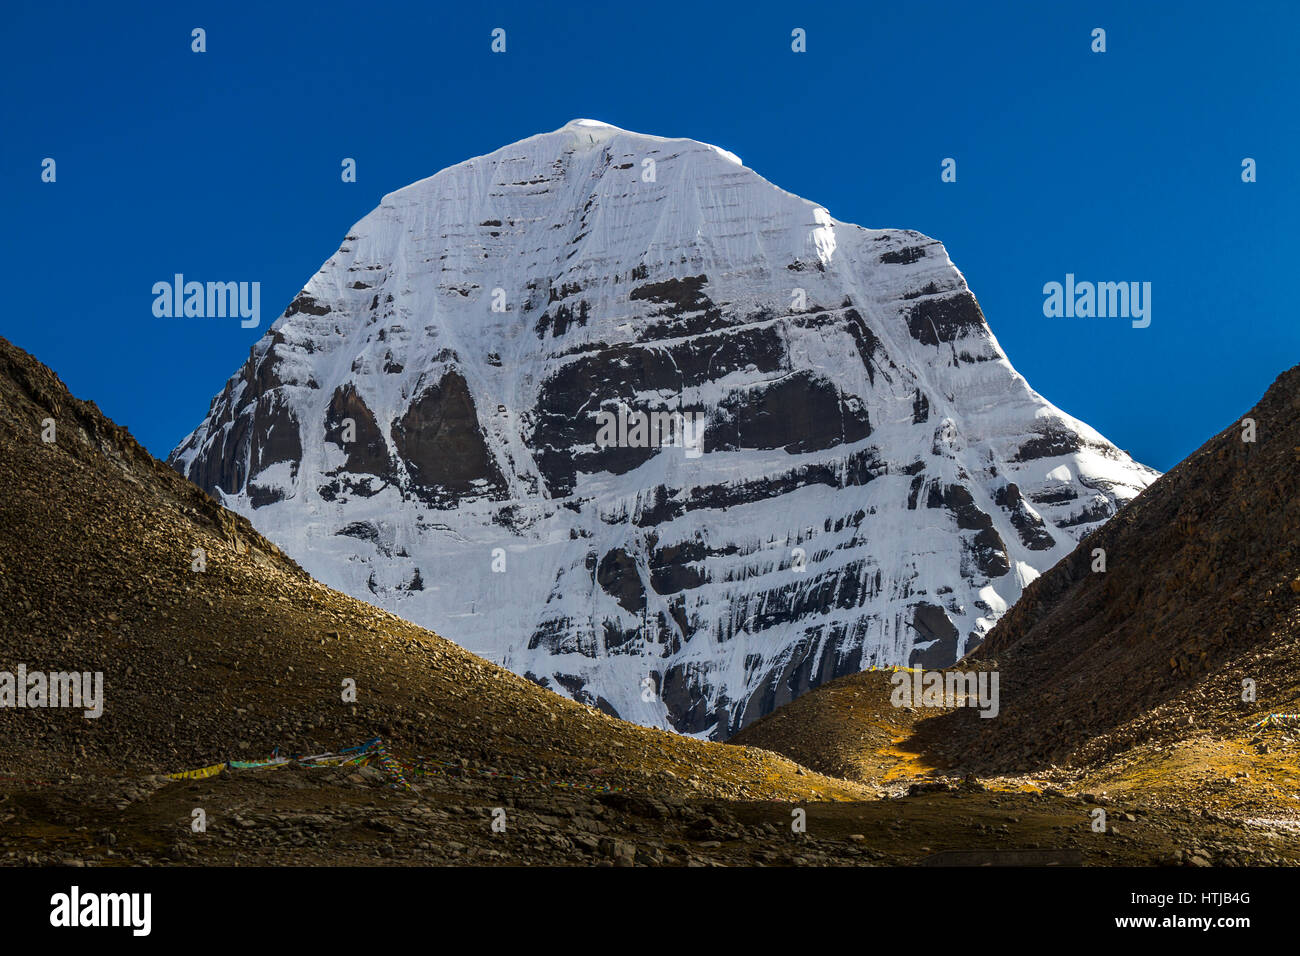 The North Face Of Mount Kailash In Sun Light A View From Dirapuk